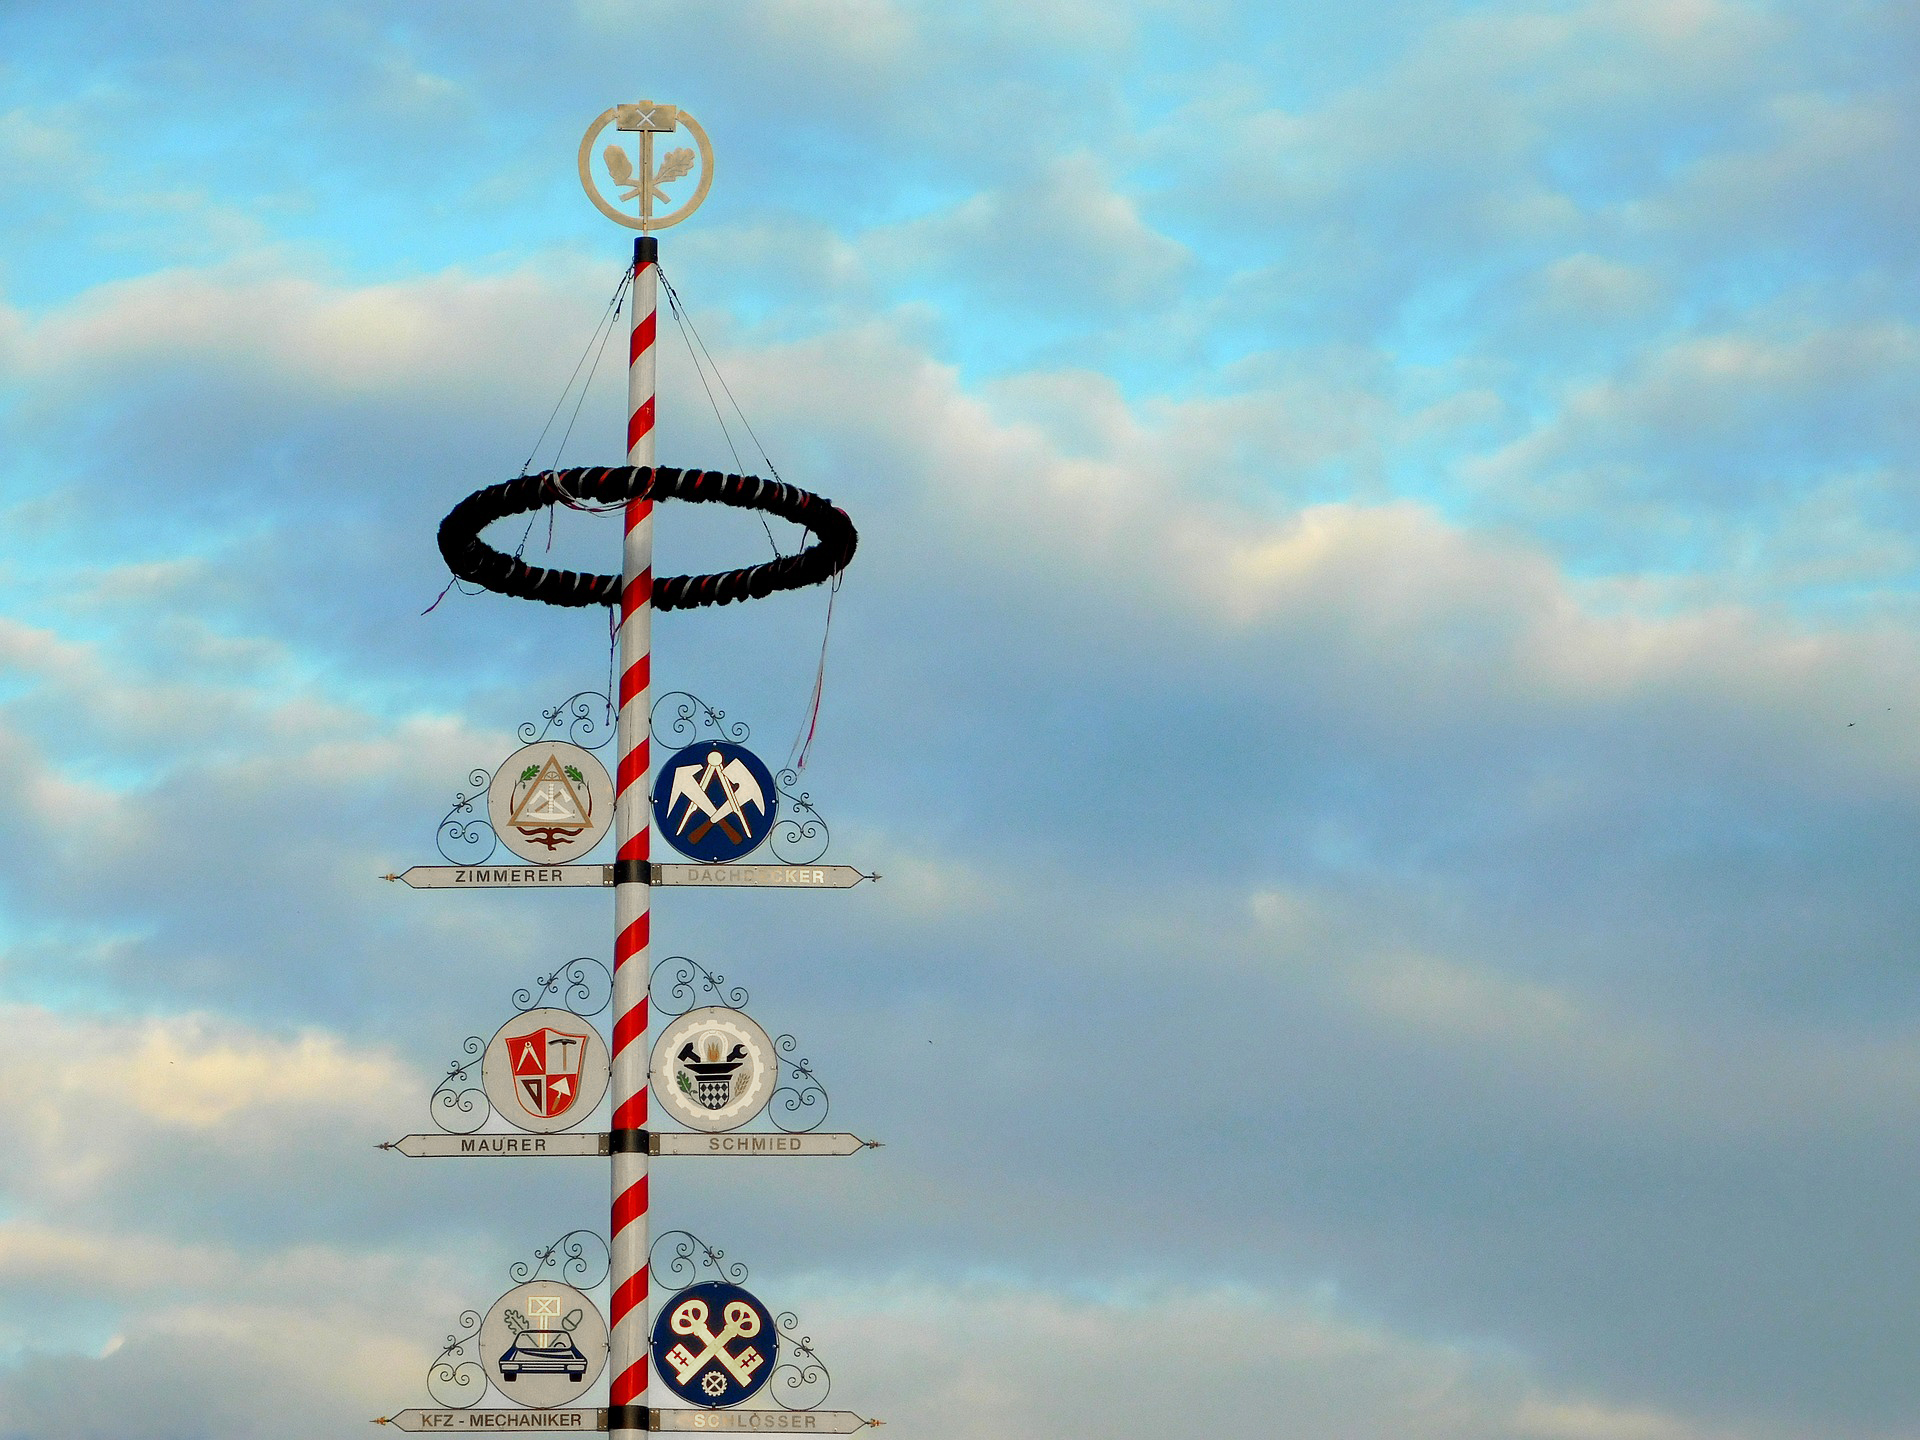 The decoration of maypole